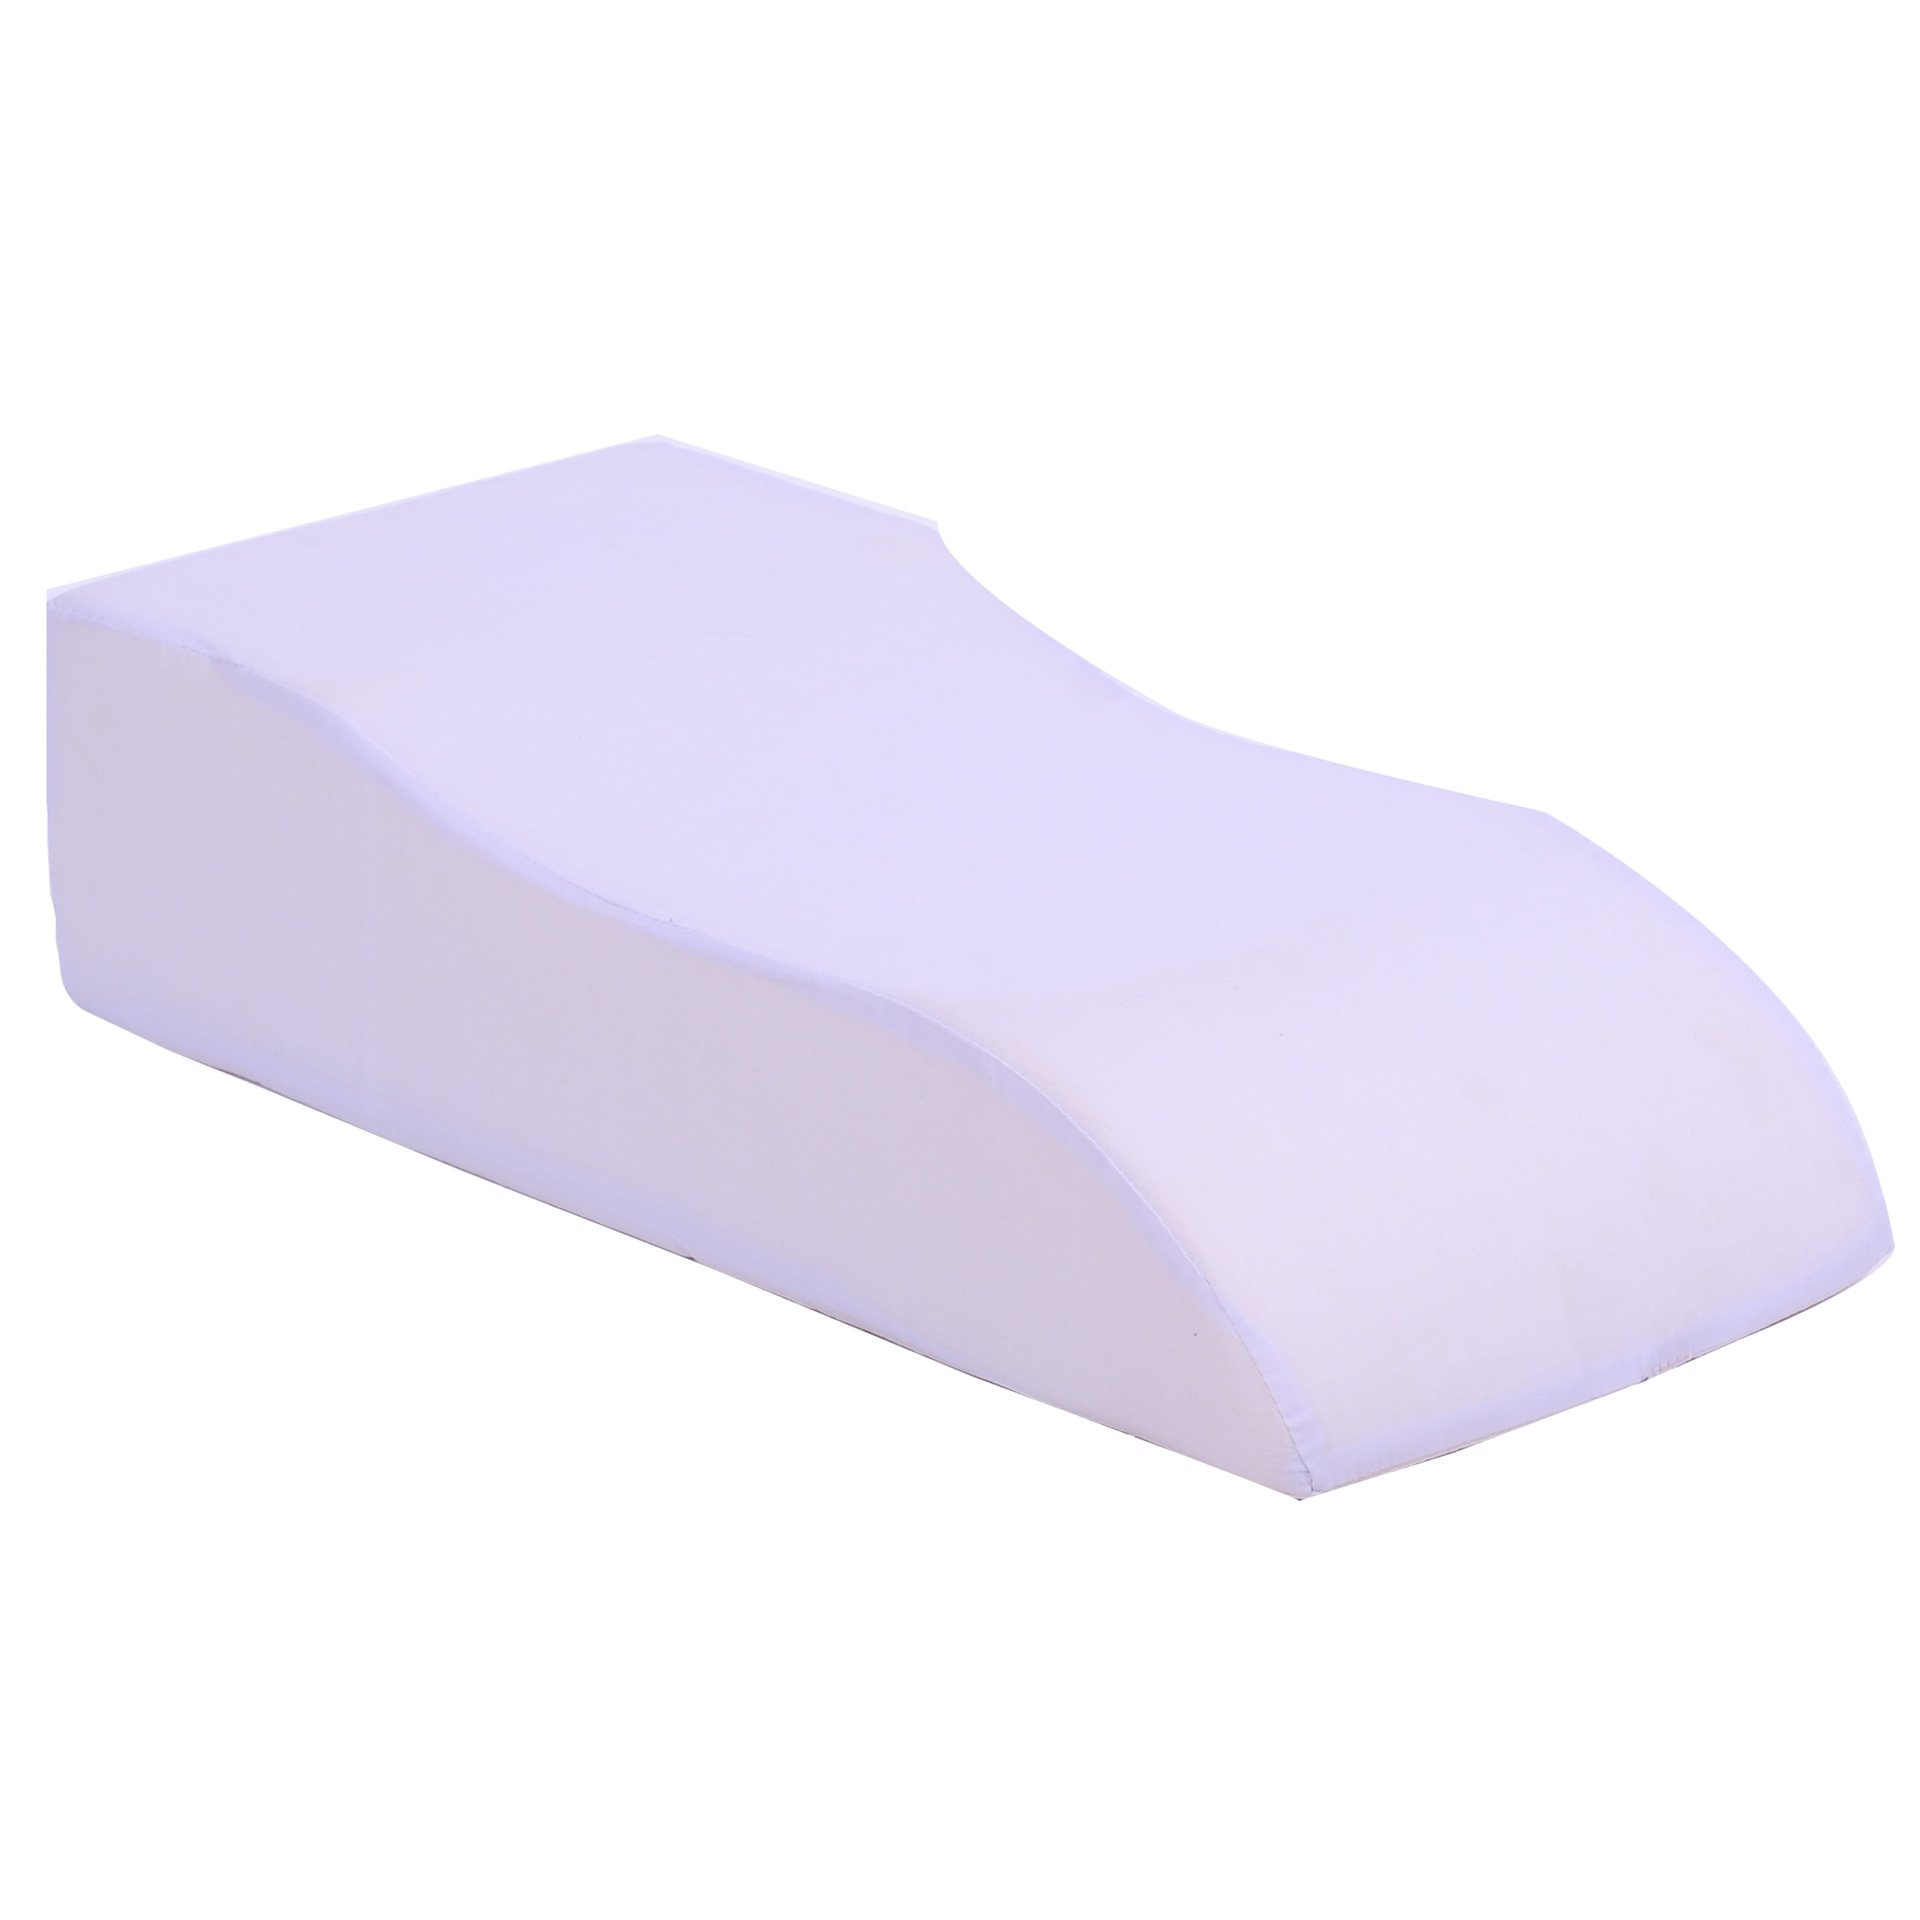 DeFancy Medical Foam Leg Elevating Cushion Leg Rest Pillow with Cotton Cover (White)